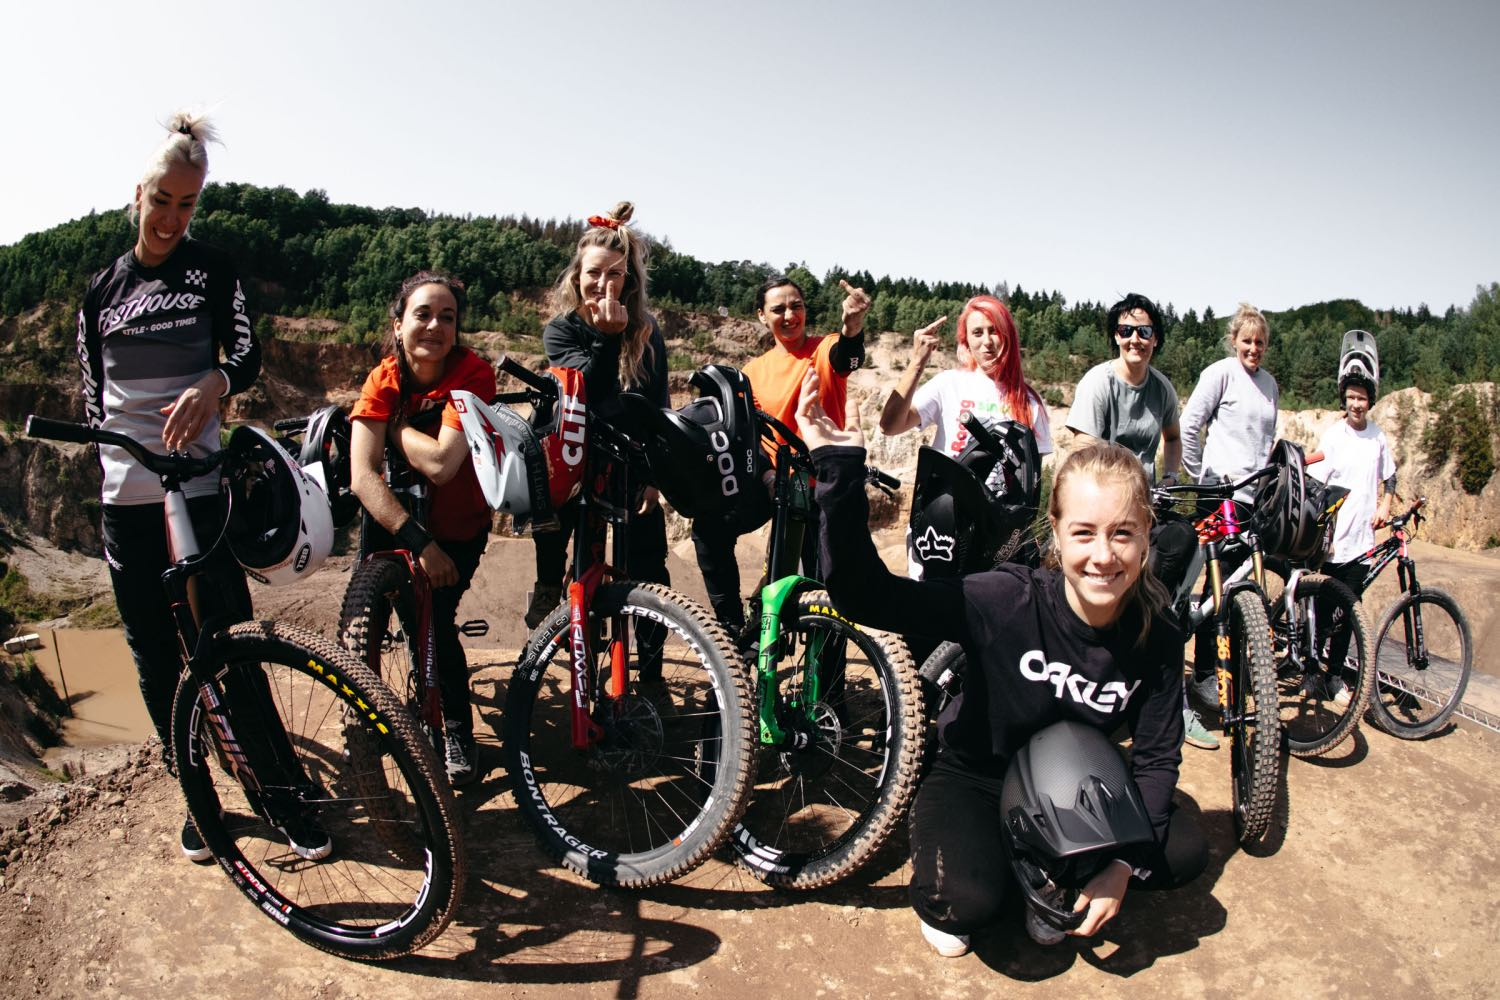 Women riders included into the Audi Nines MTB event